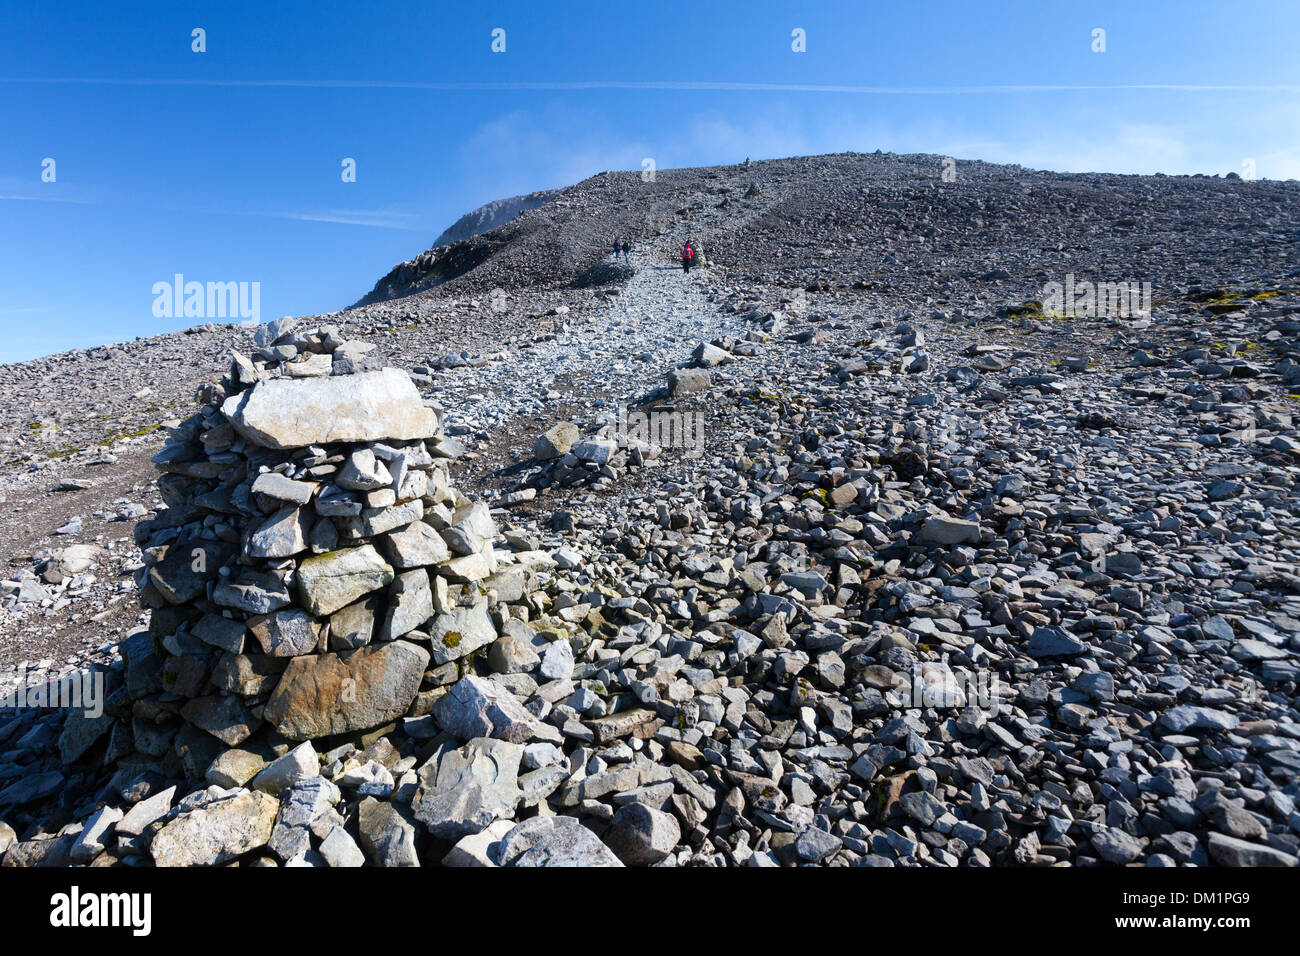 Ben Nevis in the Scottish Highlands, the pony track footpath, marked by rock cairns, approaching the summit with light cloud in the distance. - Stock Image